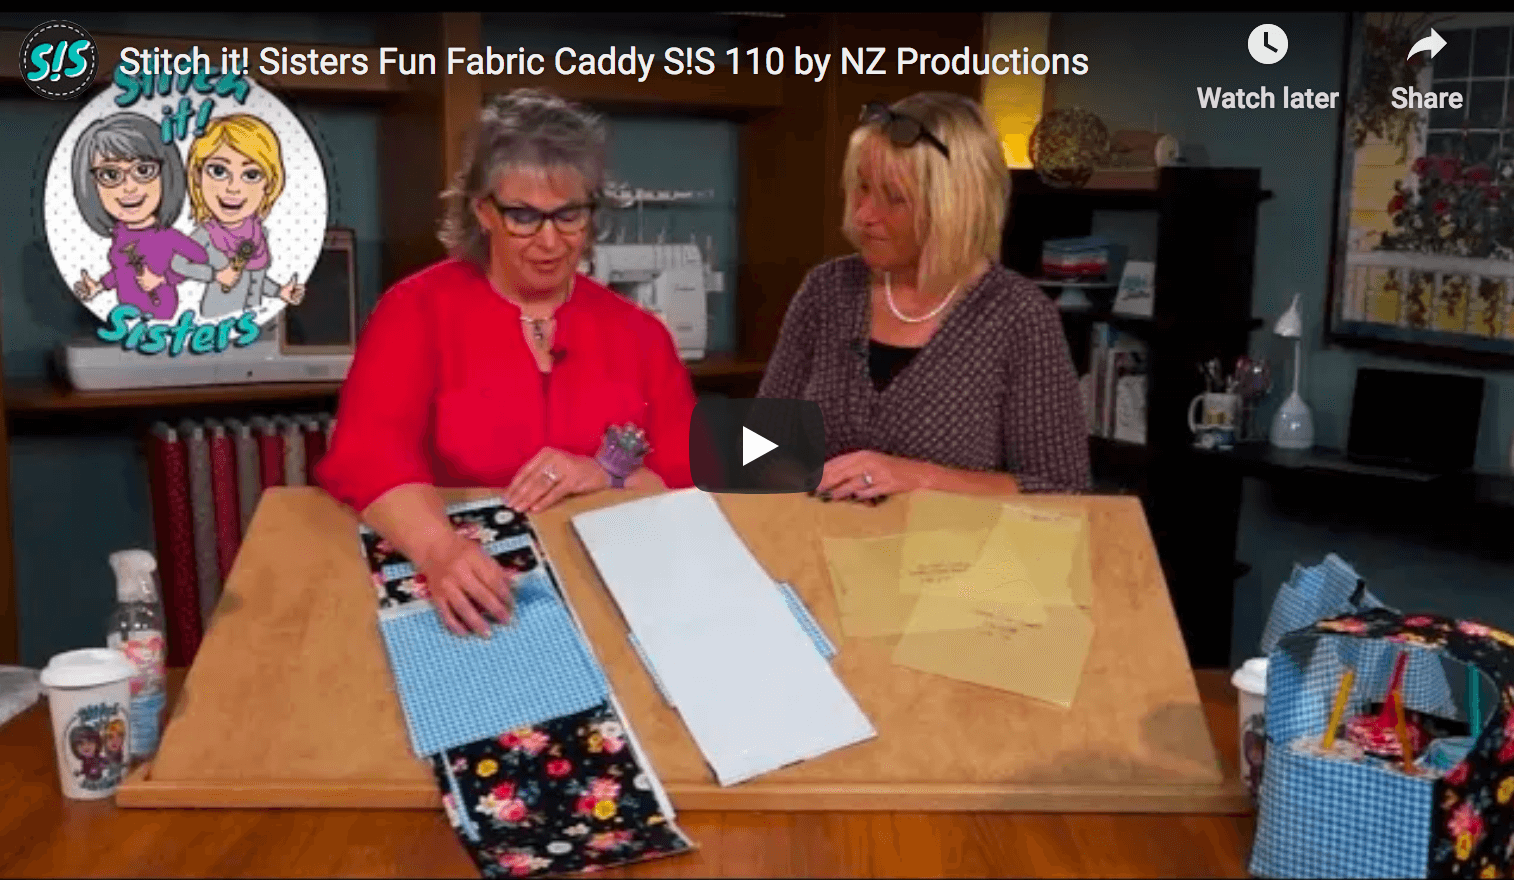 Fun Fabric Caddy Sewing Tutorial by the Stitch it Sisters at The Nancy Zieman Productions Blog